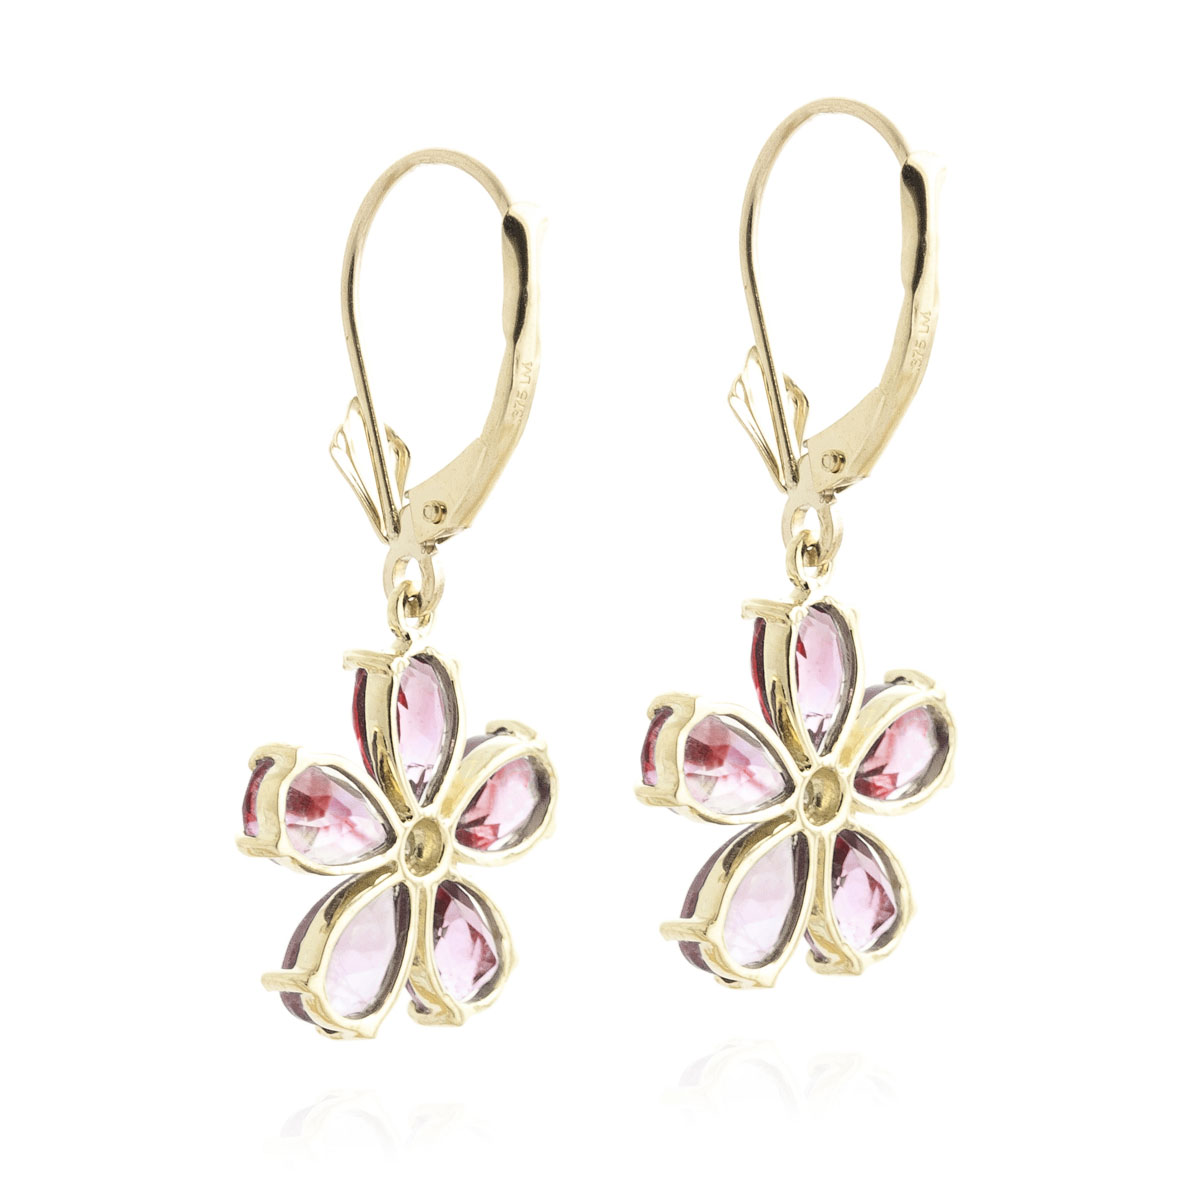 Garnet & Diamond Flower Petal Drop Earrings in 9ct Gold